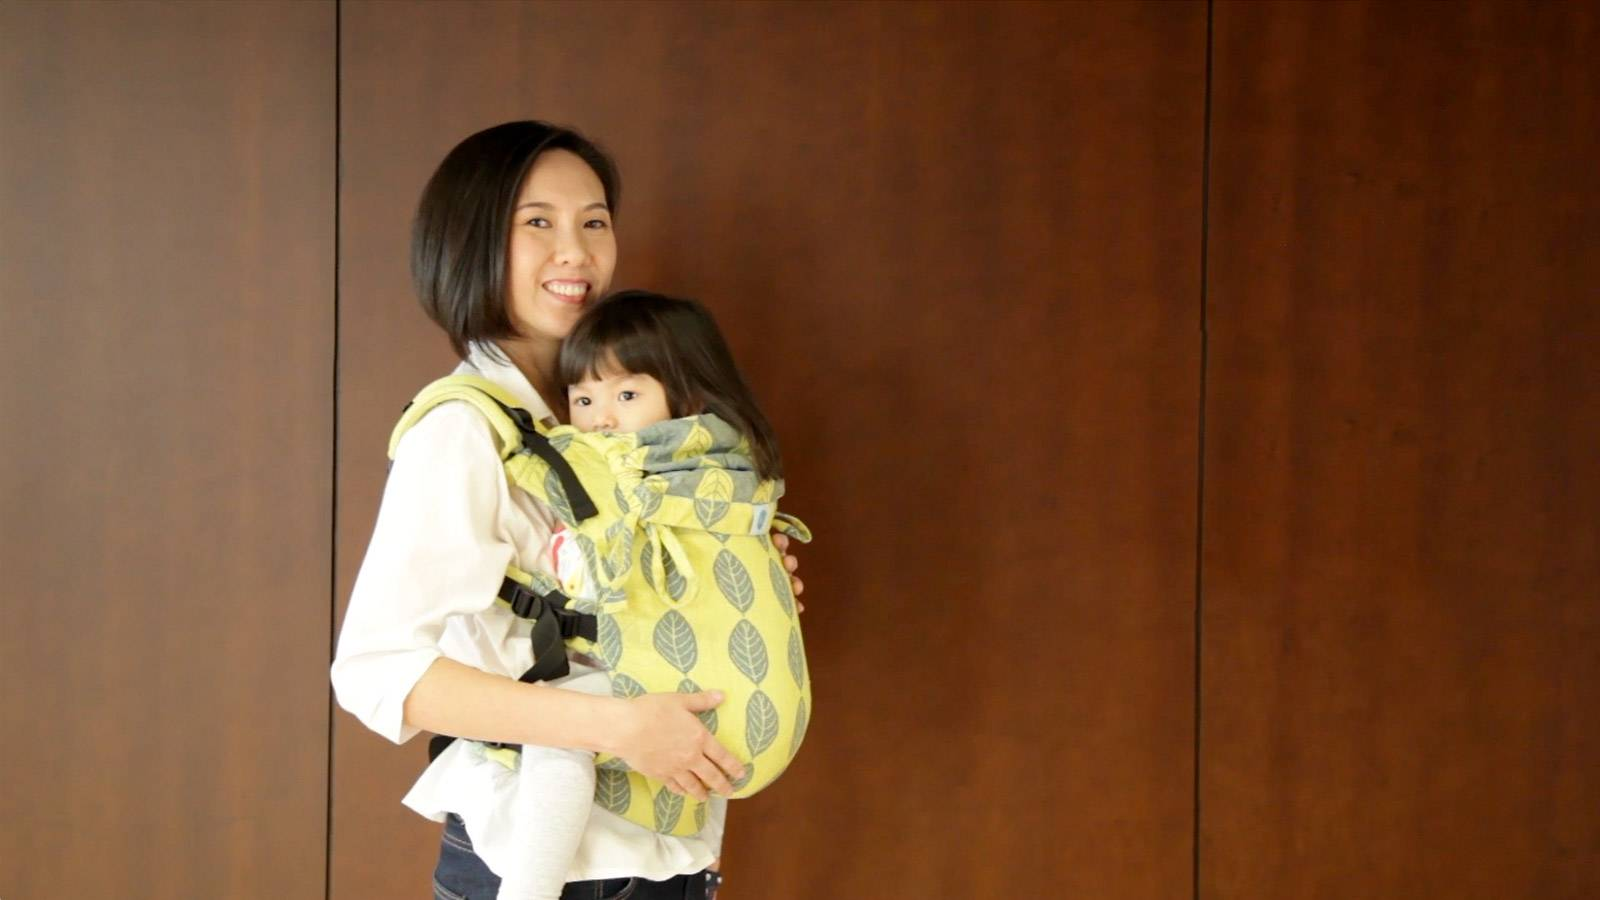 Babywearing How To Use A Toddler Carrier